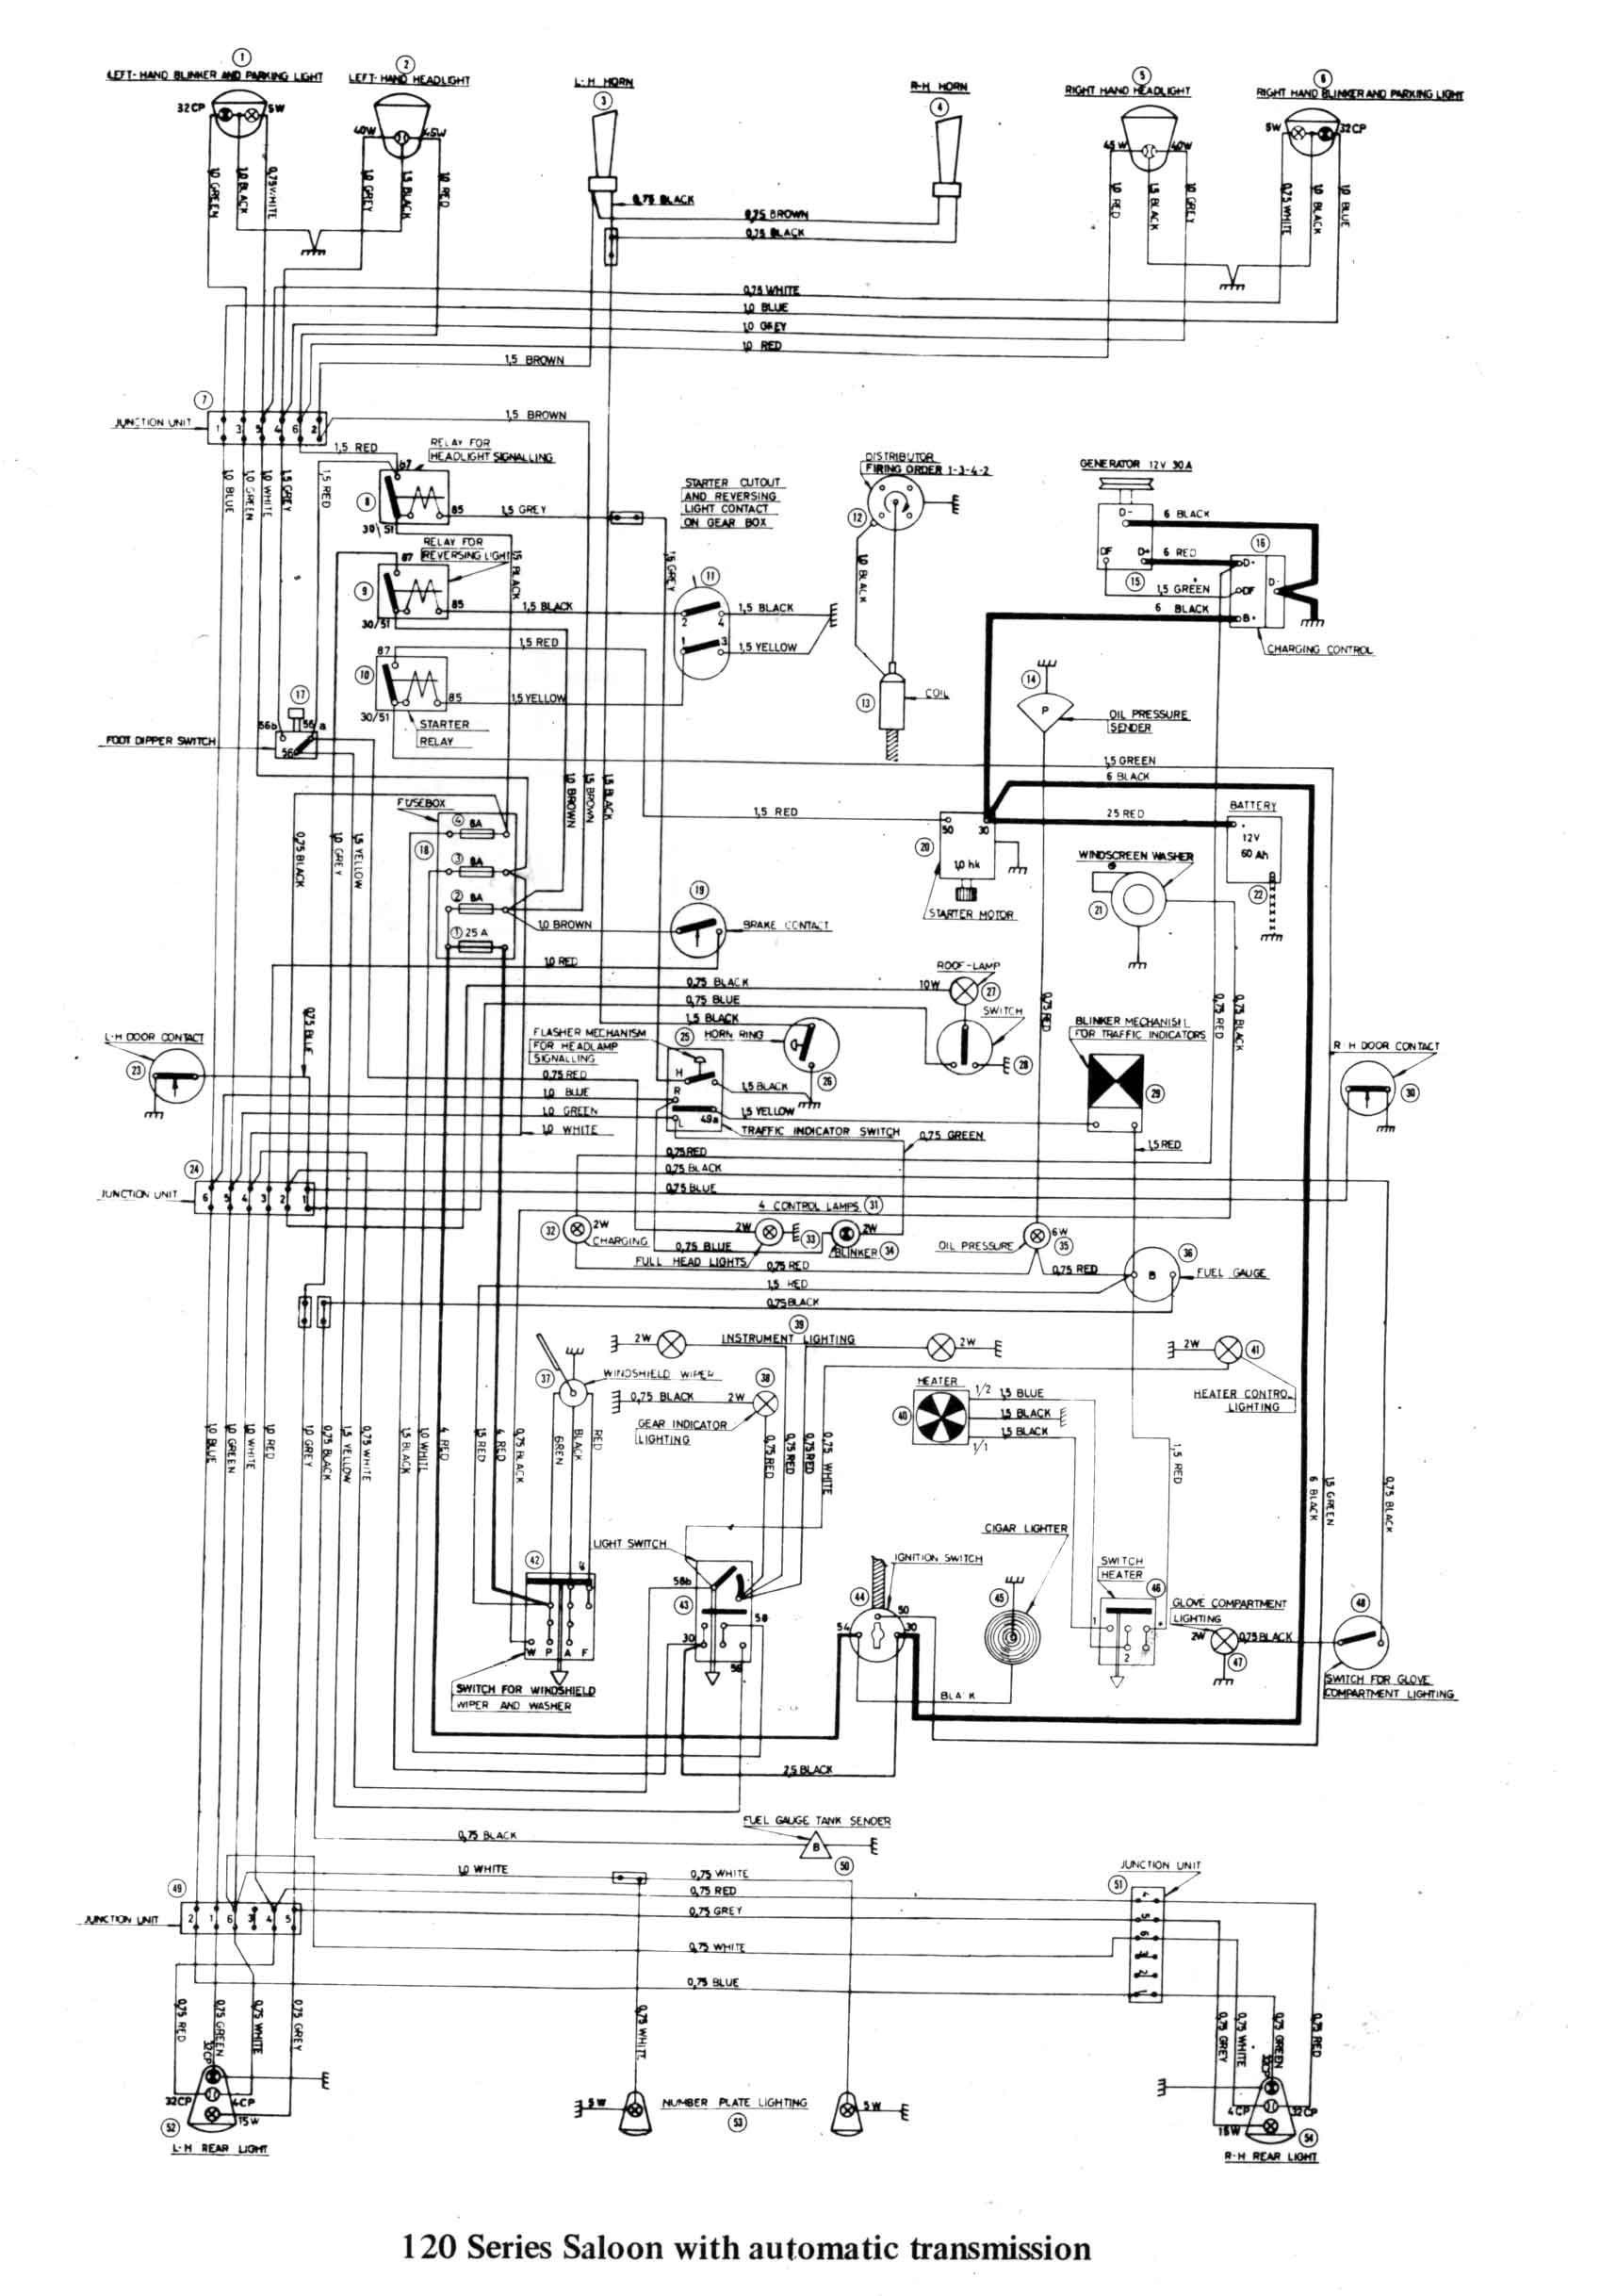 Diagram Of Car Charger Modern Home Wiring Diagram Valid Club Car Charger Receptacle Wiring Of Diagram Of Car Charger